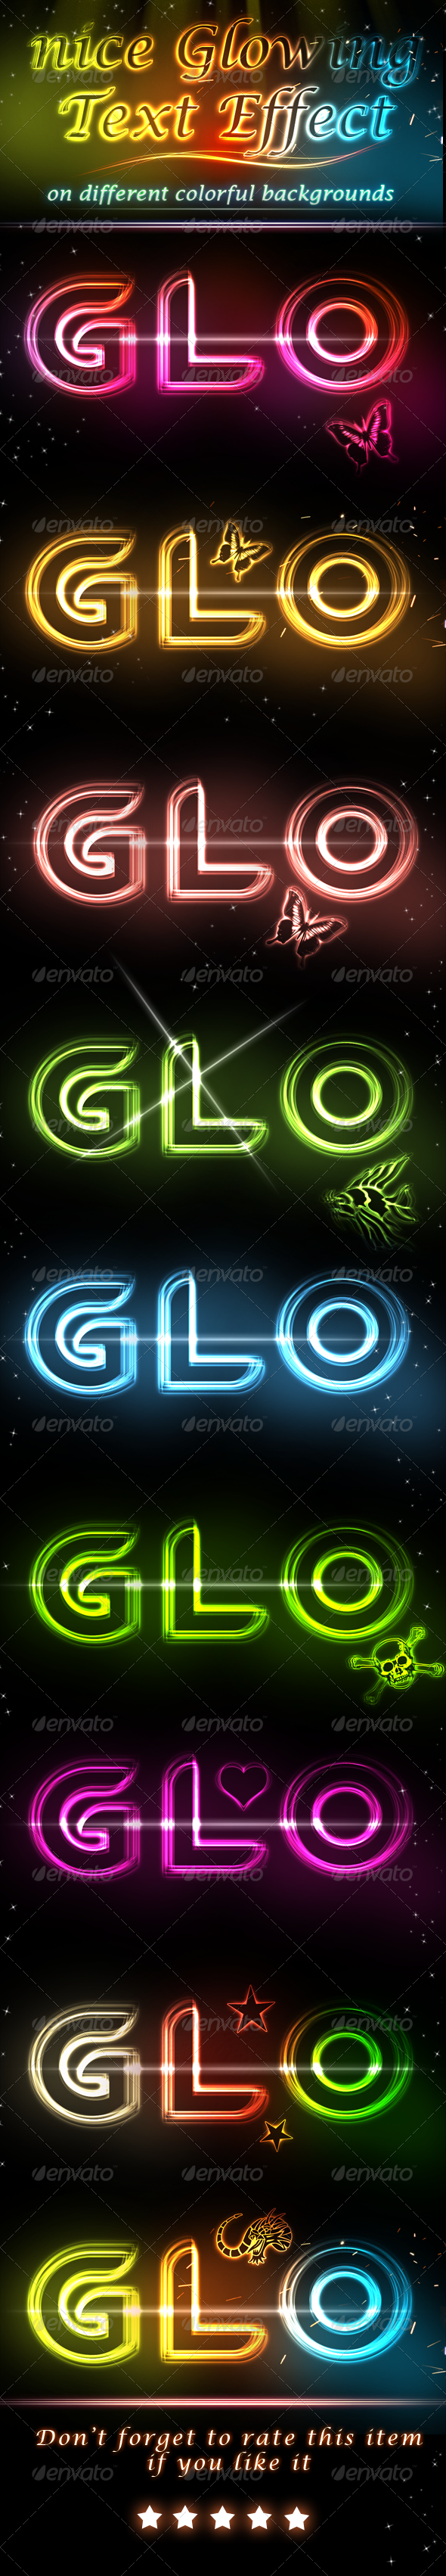 Glowing Light Text Effect V.2 - Text Effects Styles